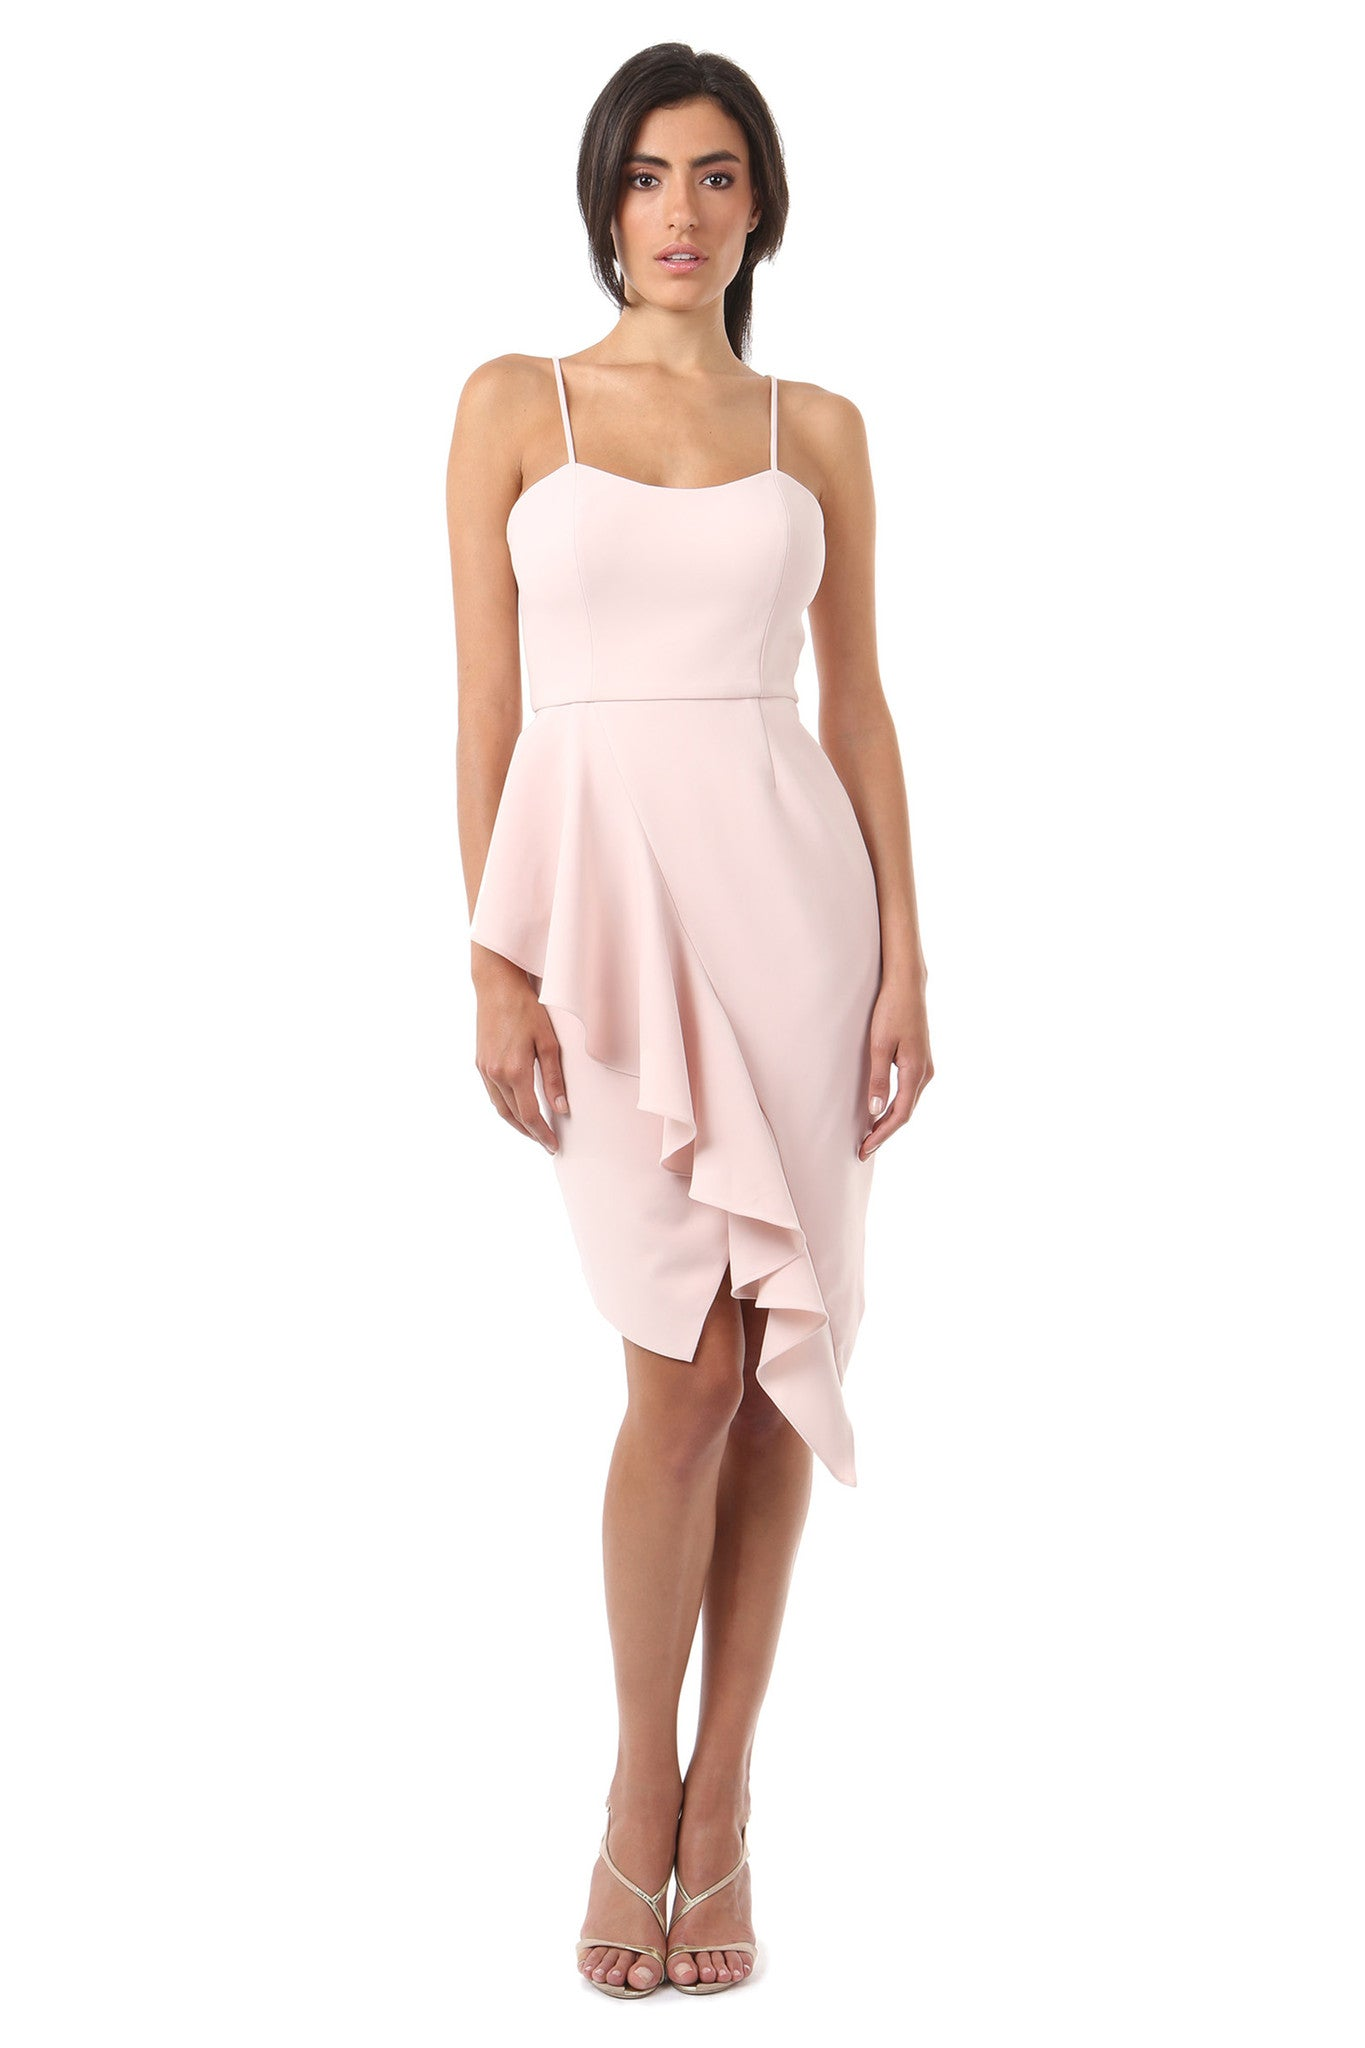 Jay Godfrey Blush Ruffle Tank Top Dress - Front View